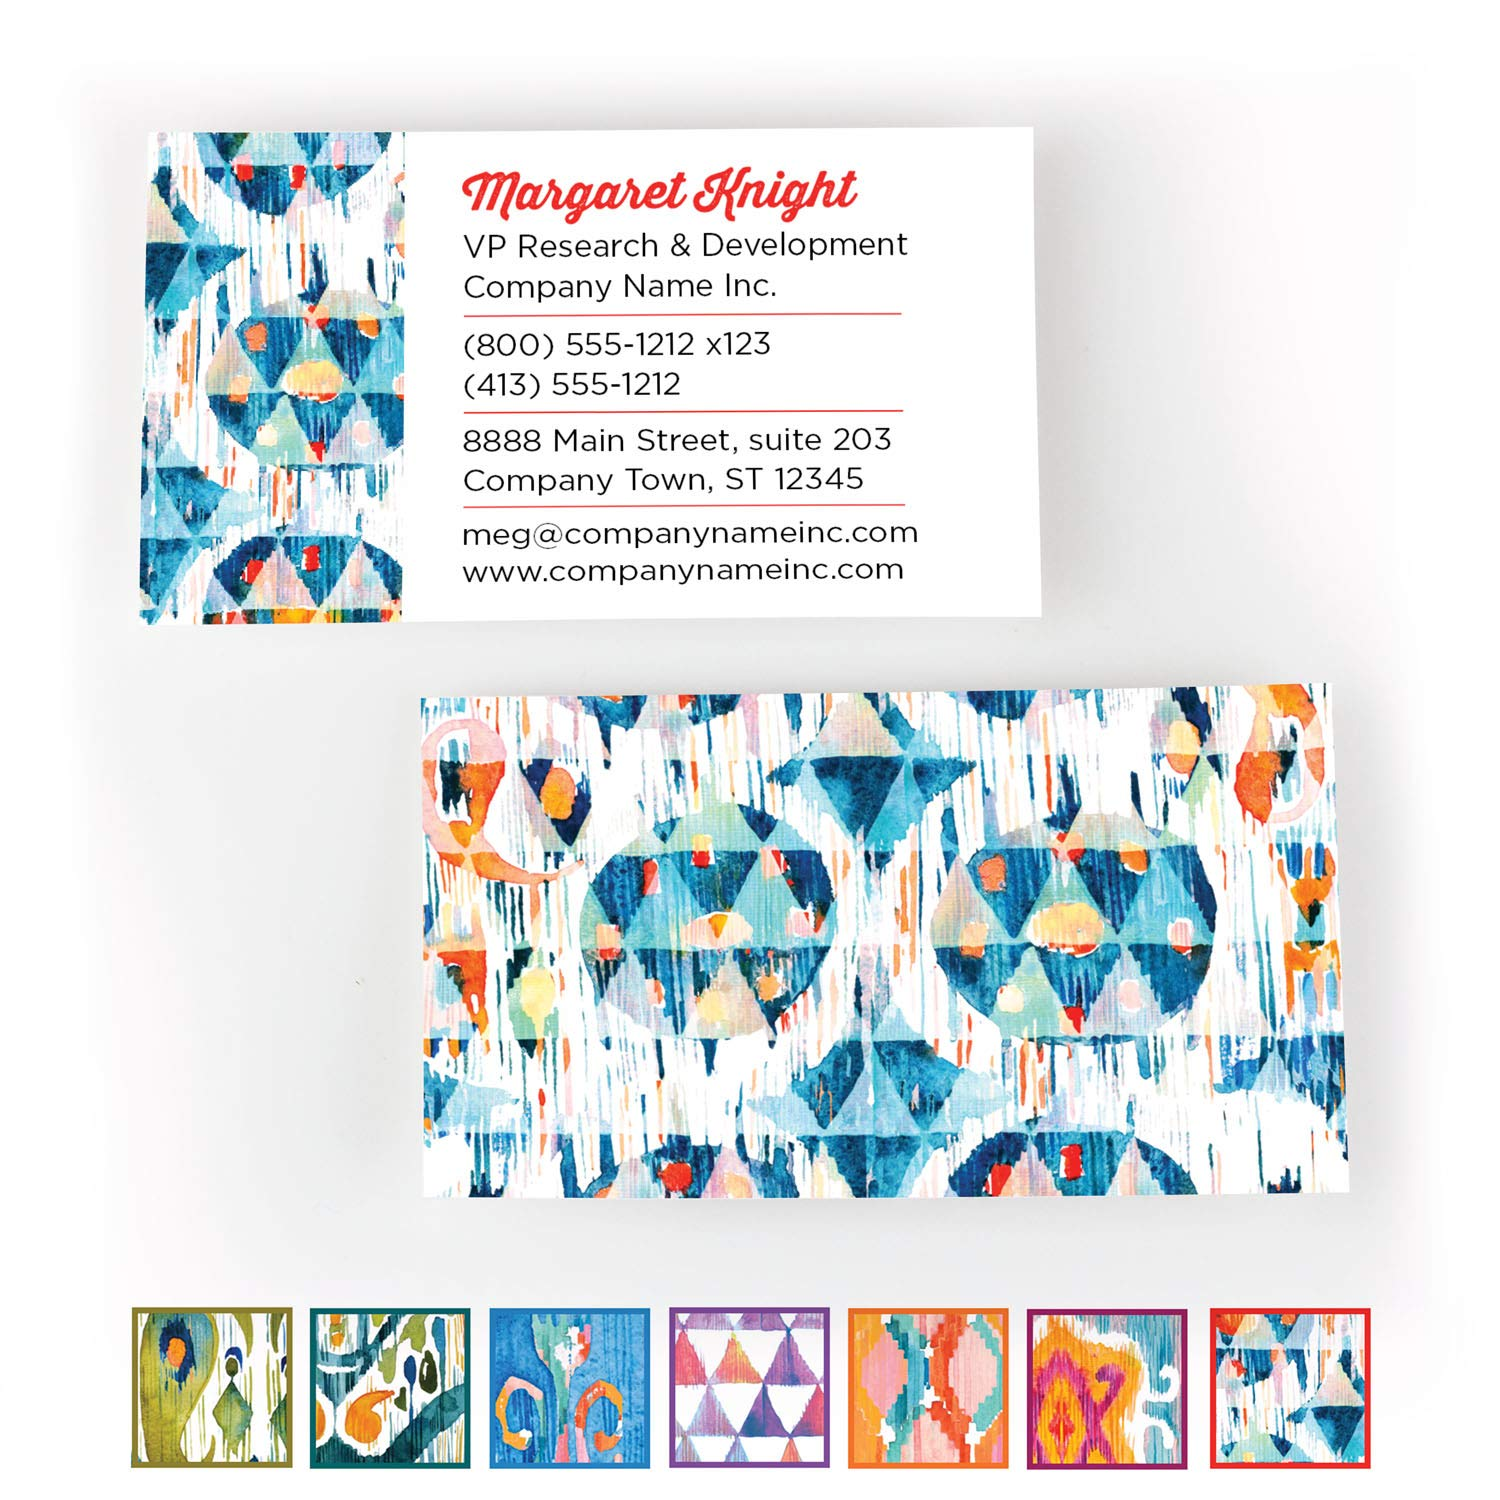 Buttonsmith Custom Premium Printed Business Cards - 3.5''x2'' - Quantity 500 - Double-Sided, 110 lb Smooth Touch - Ikat - Made in The USA by Buttonsmith